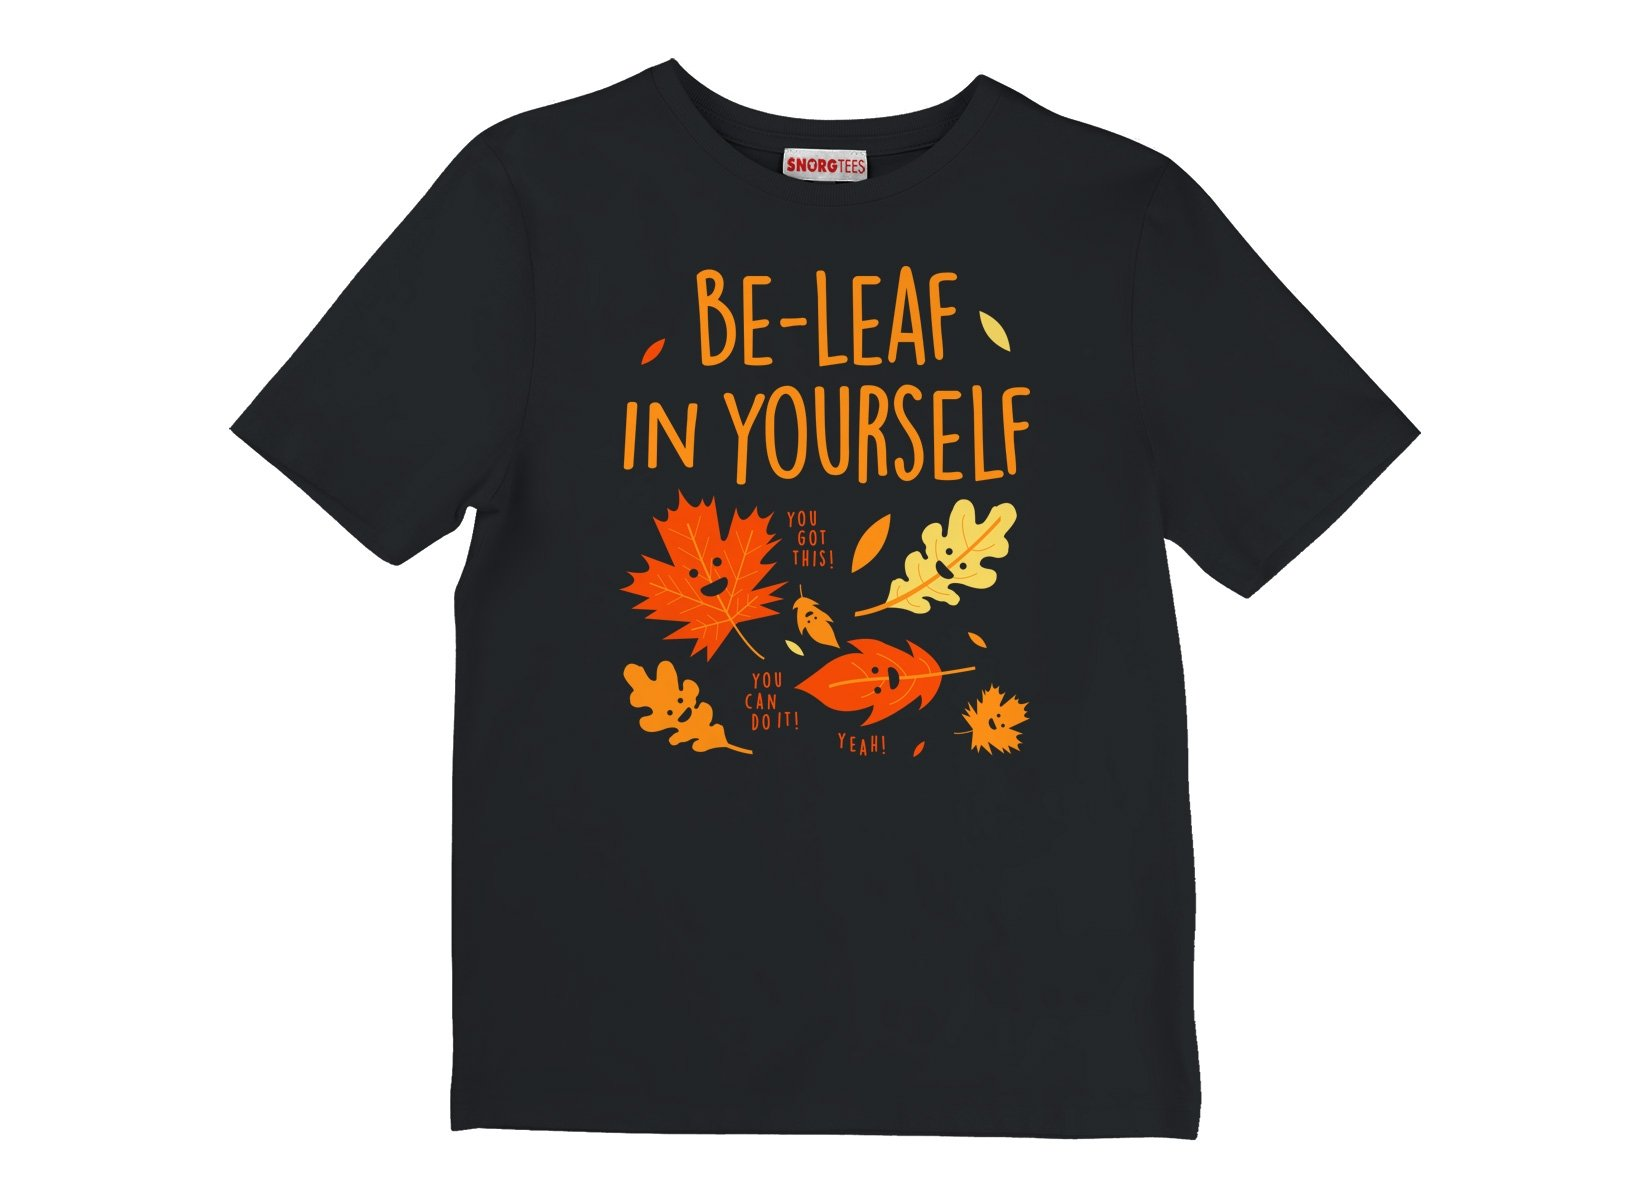 Be-Leaf In Yourself on Kids T-Shirt